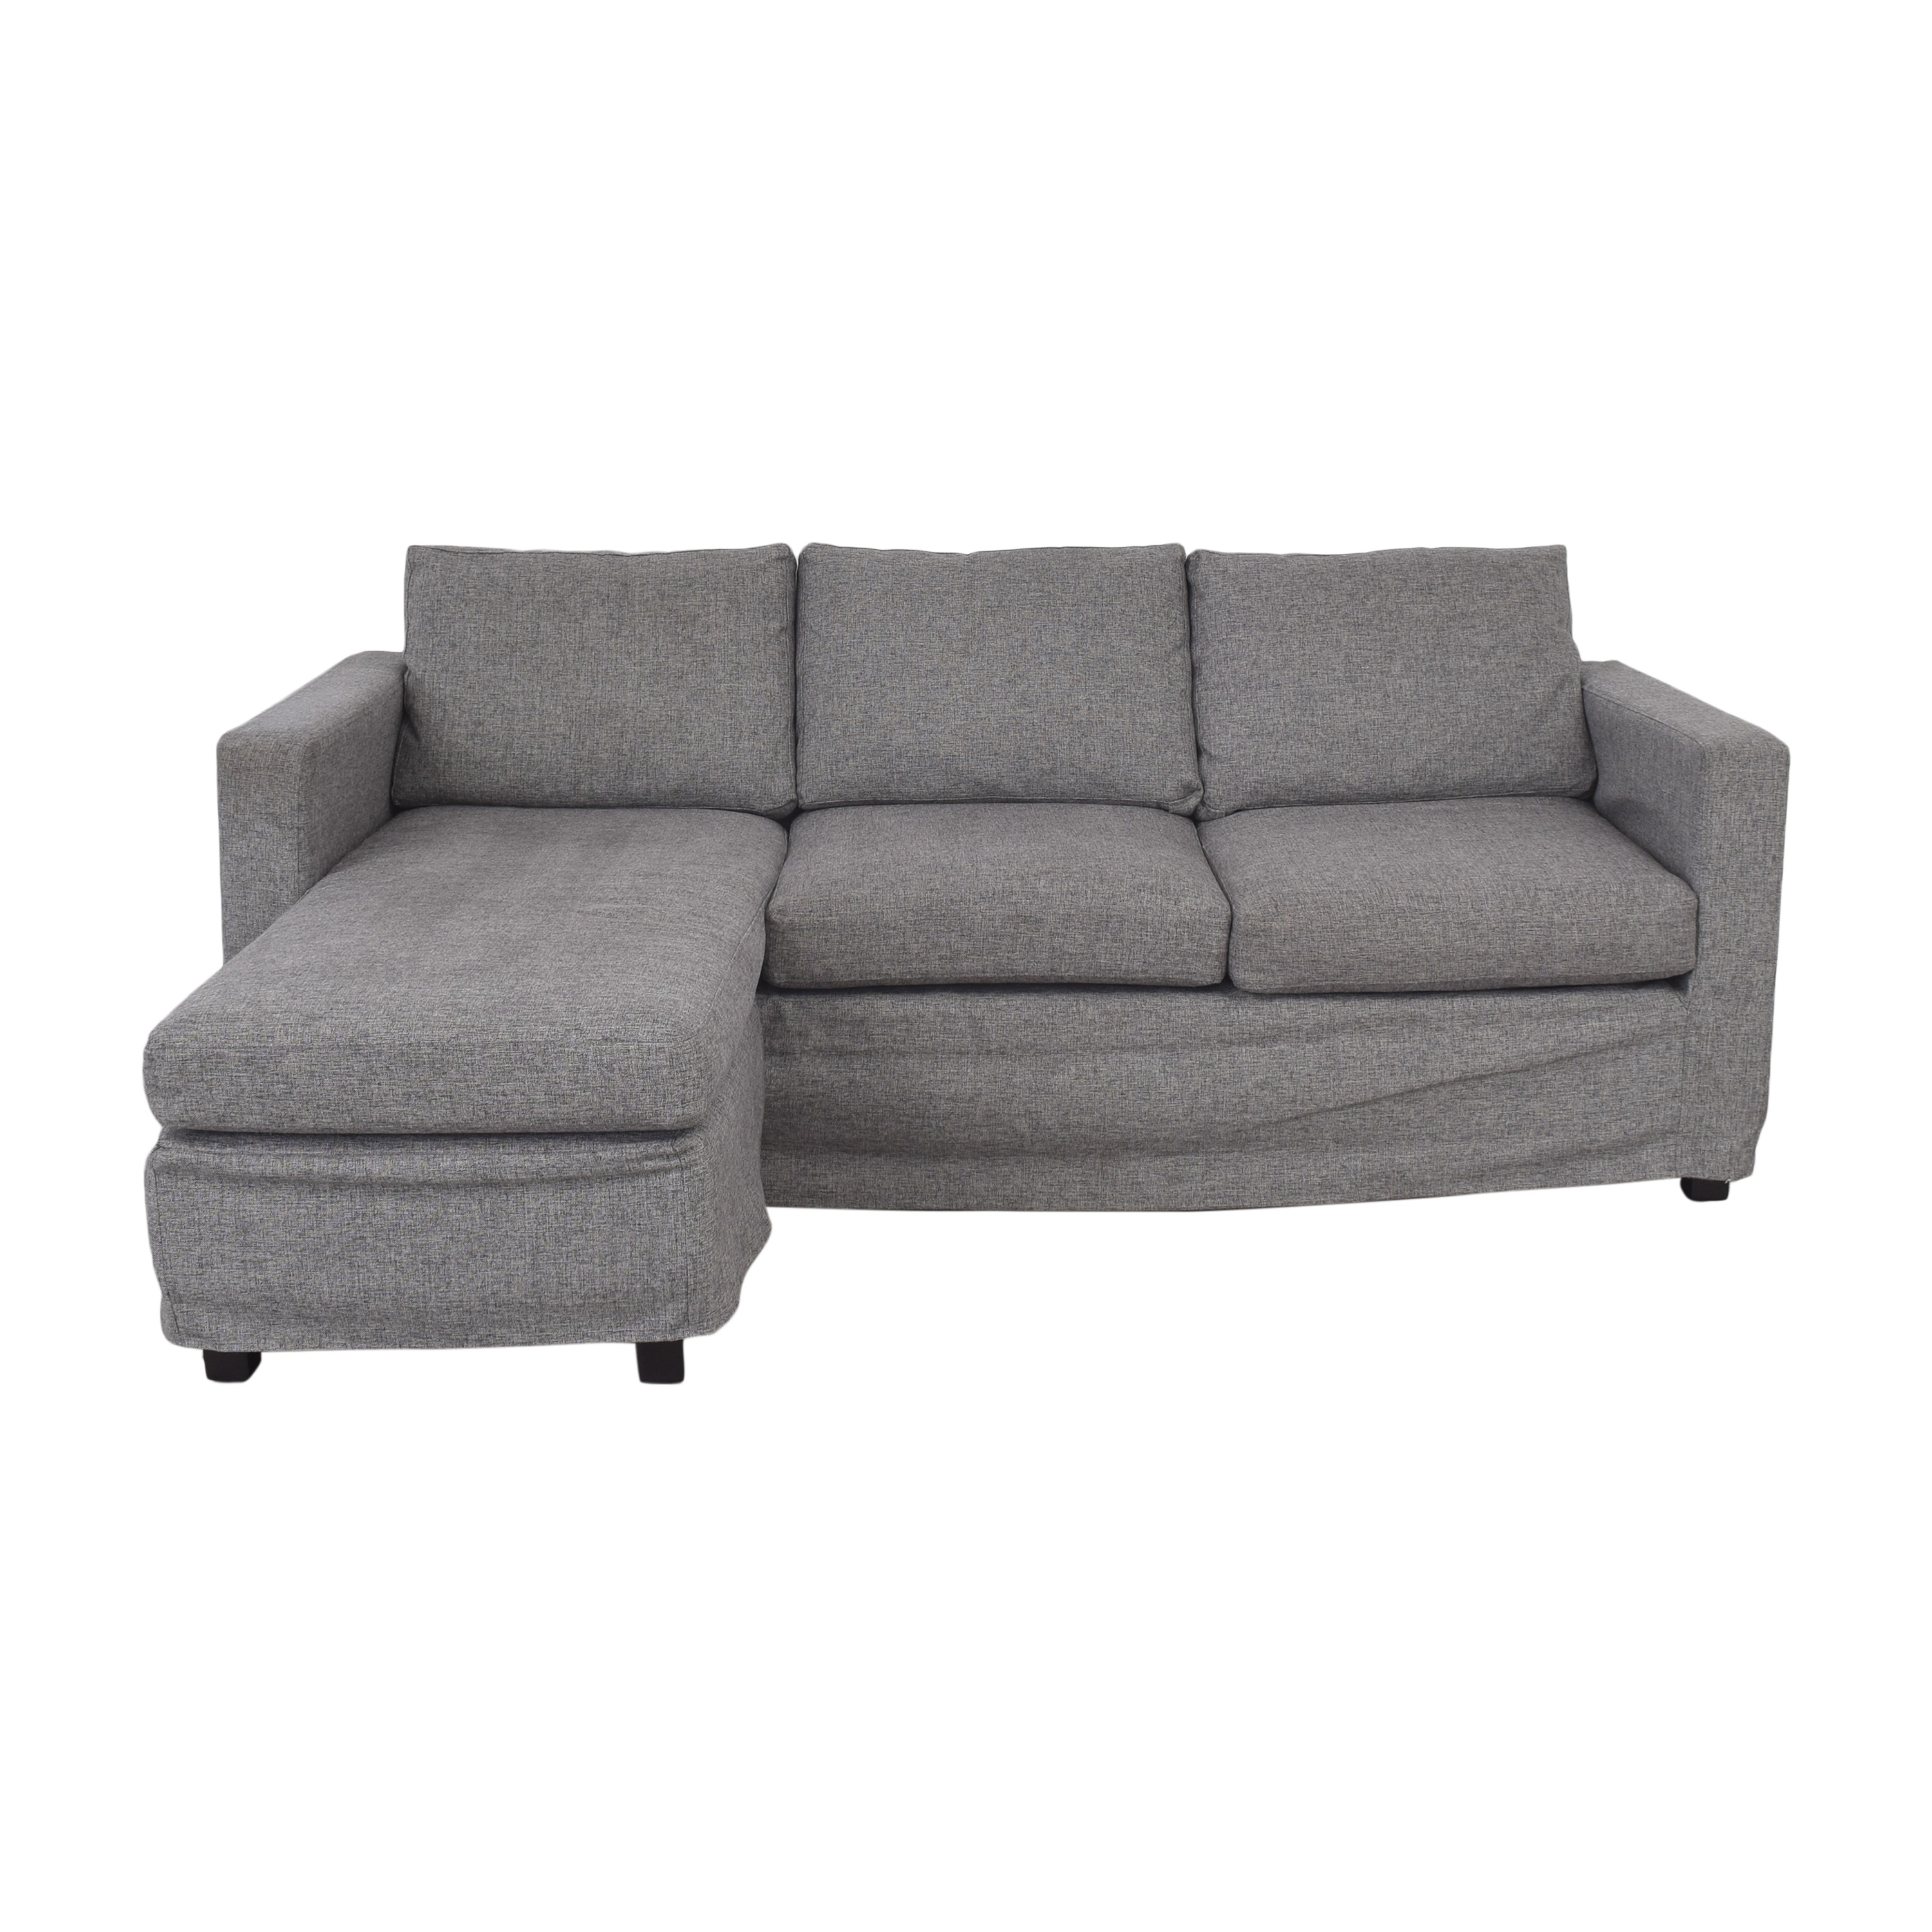 Andover Mills Andover Mills Chaise Reversible Sectional Sofa Sofas